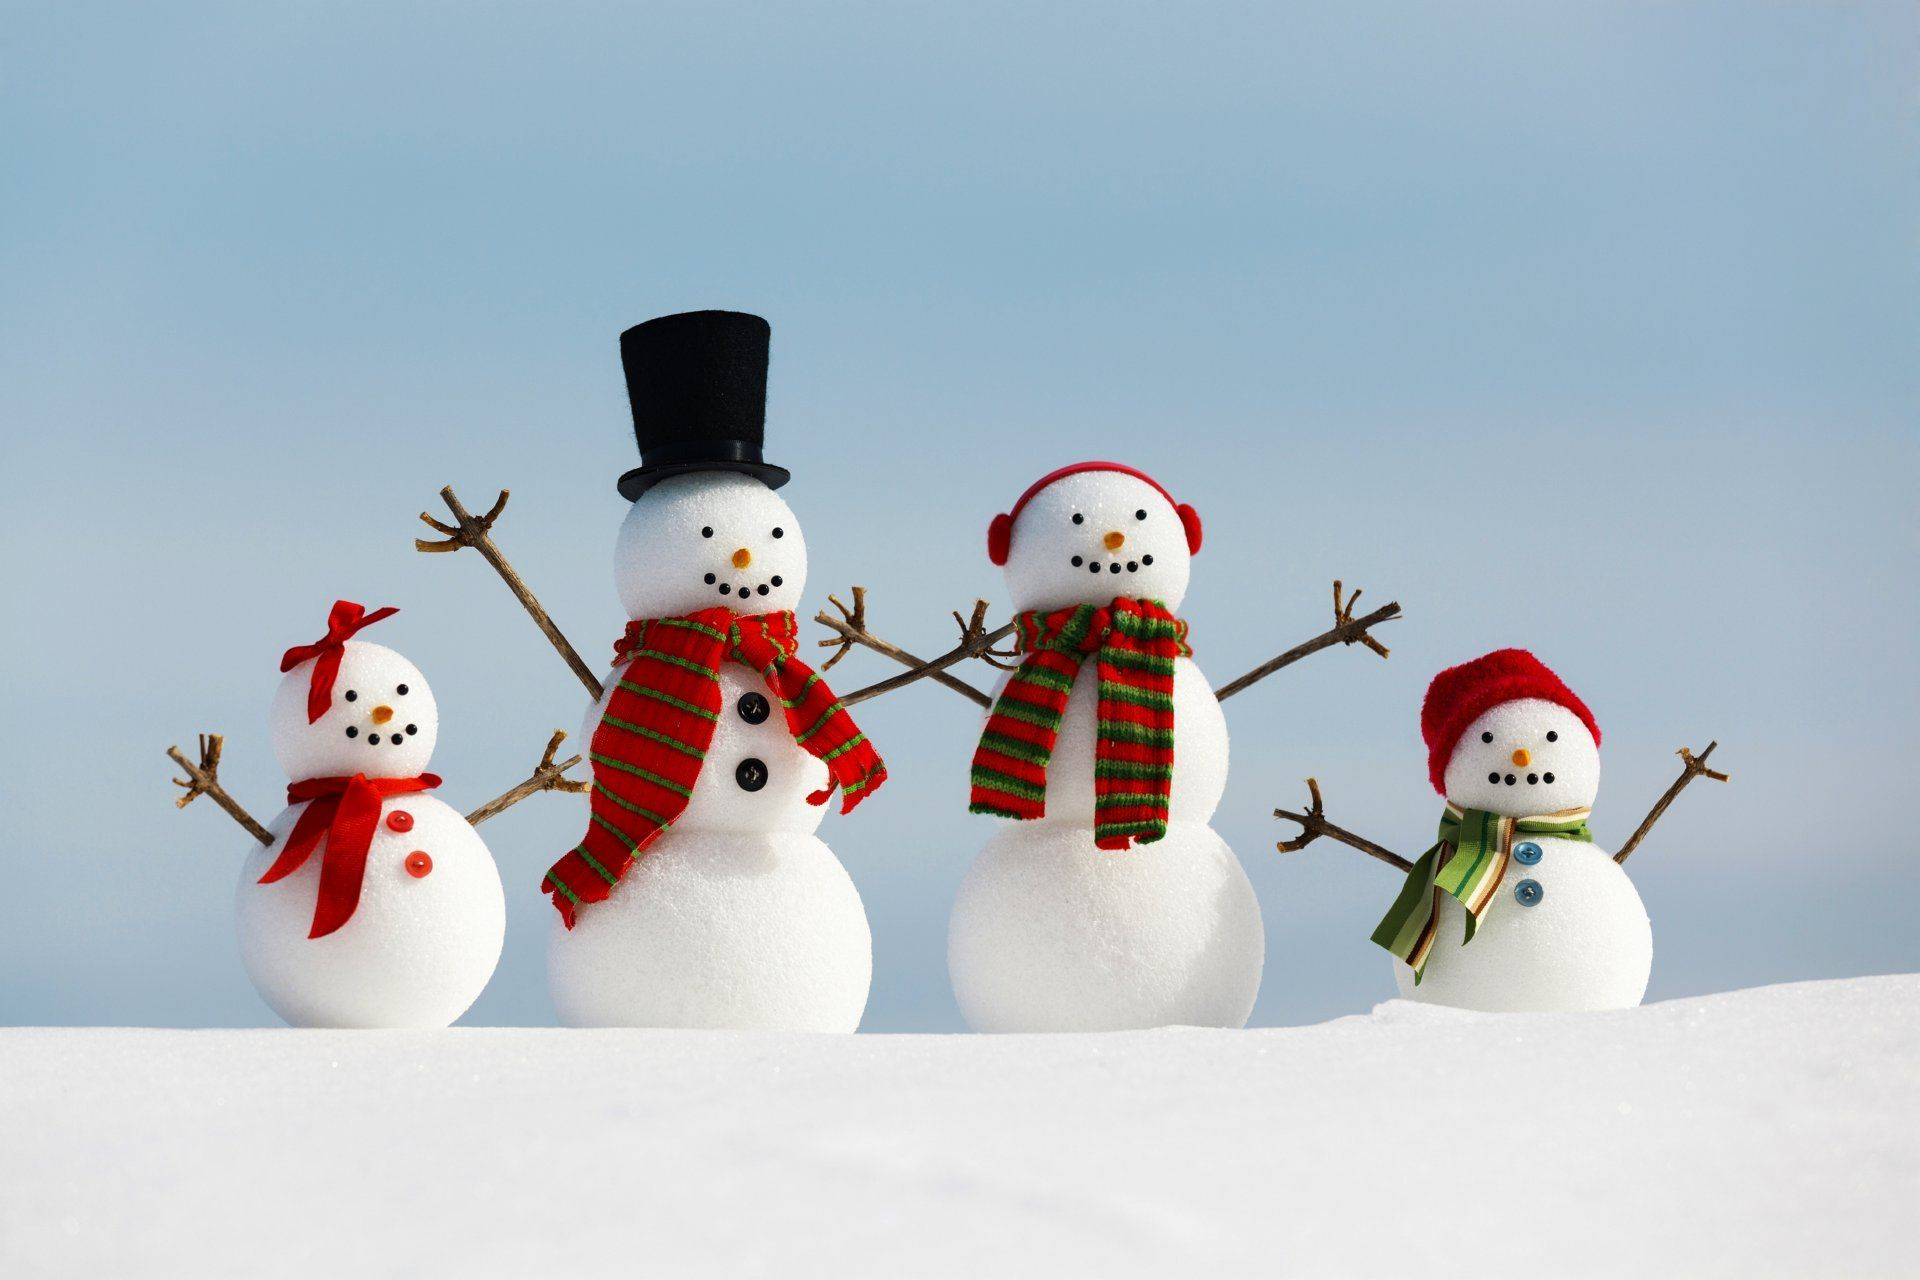 merry christmas wallpapers for whatsapp wallpapers